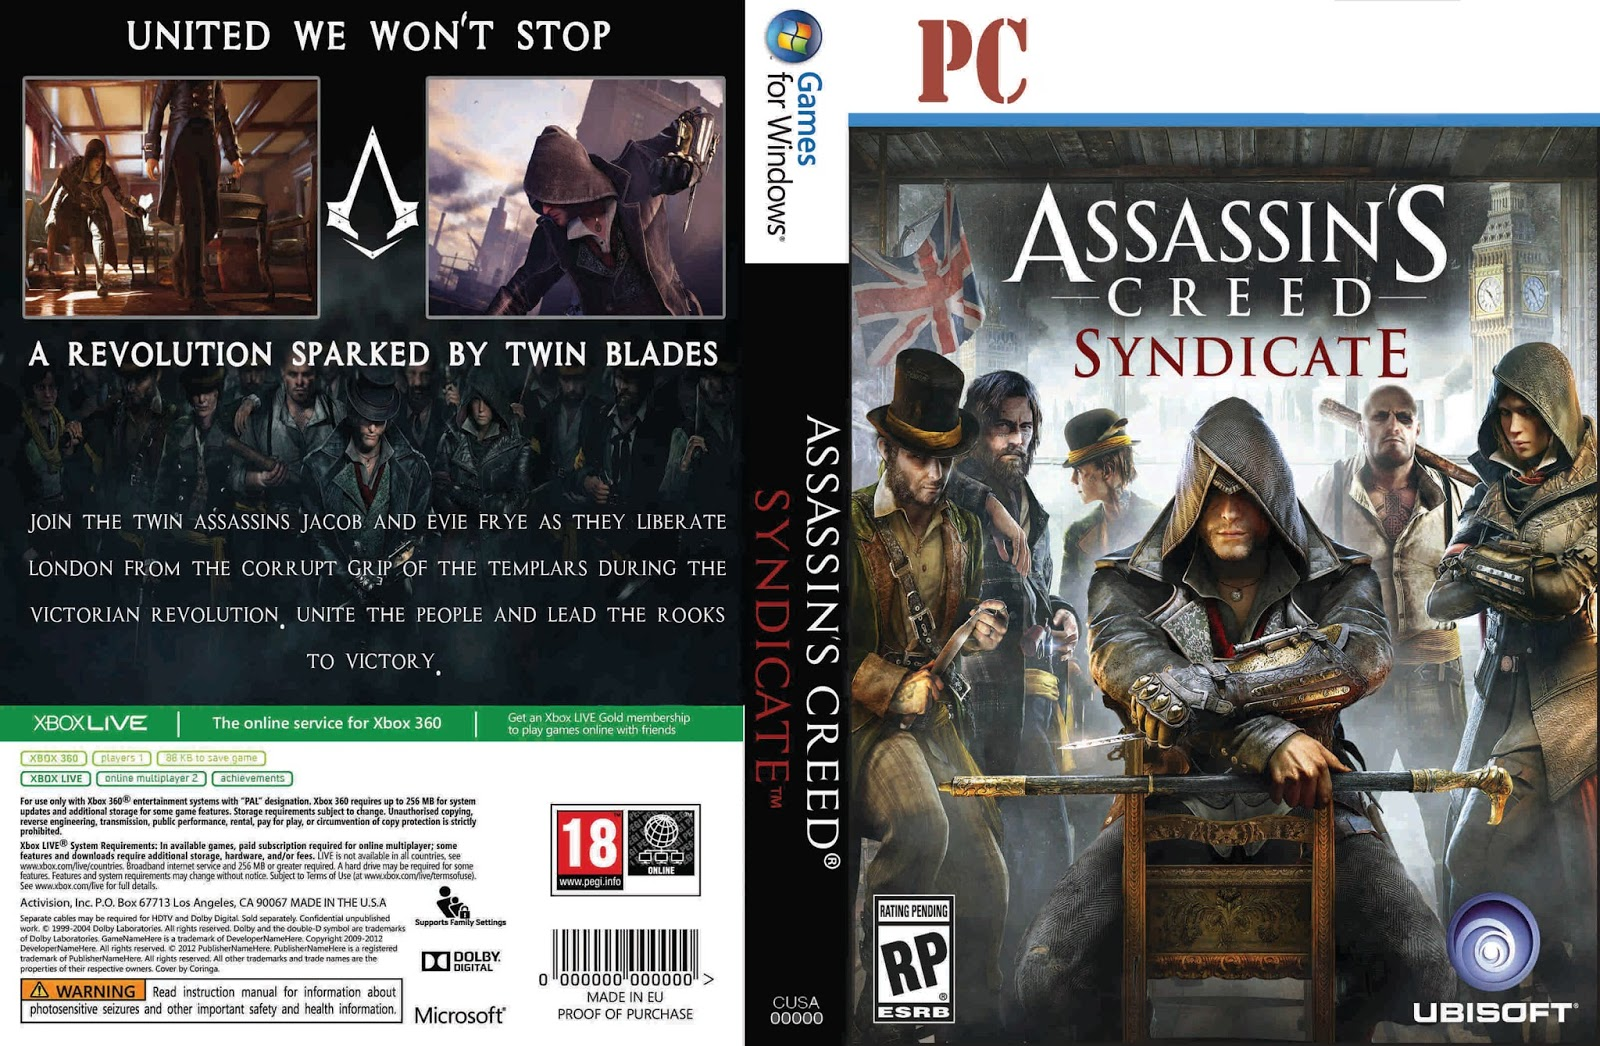 Pcgamesreq Assassin S Creed Syndicate Pc Review And Gameplay Images